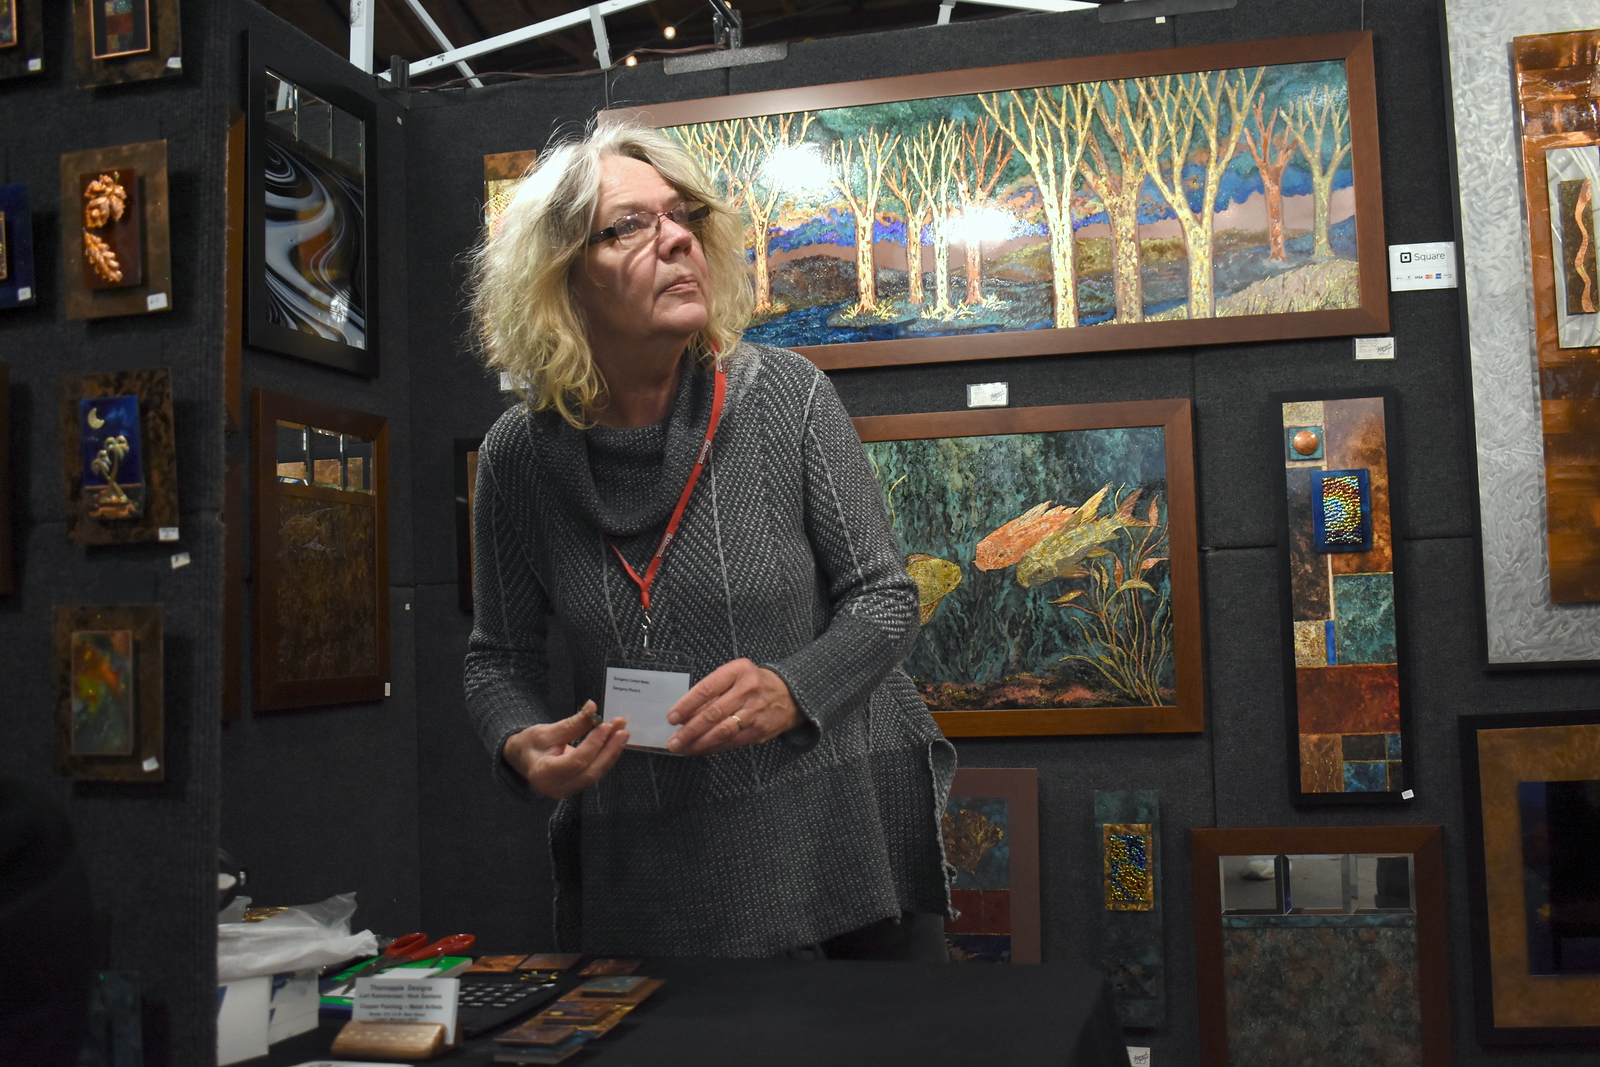 Visitors browse the jewelry, ceramics, glass, painting, sculpture and other works of 60 juried artists at the 2nd annual Spring Art Fair at the Farmers Market in Royal Oak, Michigan on April 5, 2018. Hosted by The Guild of Artists and Artisans, the event, which runs Friday April 6 from noon to 10pm, kicks off the Art Fair season and includes music, food trucks and craft beverages. Officials expect roughly 7,000 people to attend the 2-day event.  (Photo by Brandy Baker)